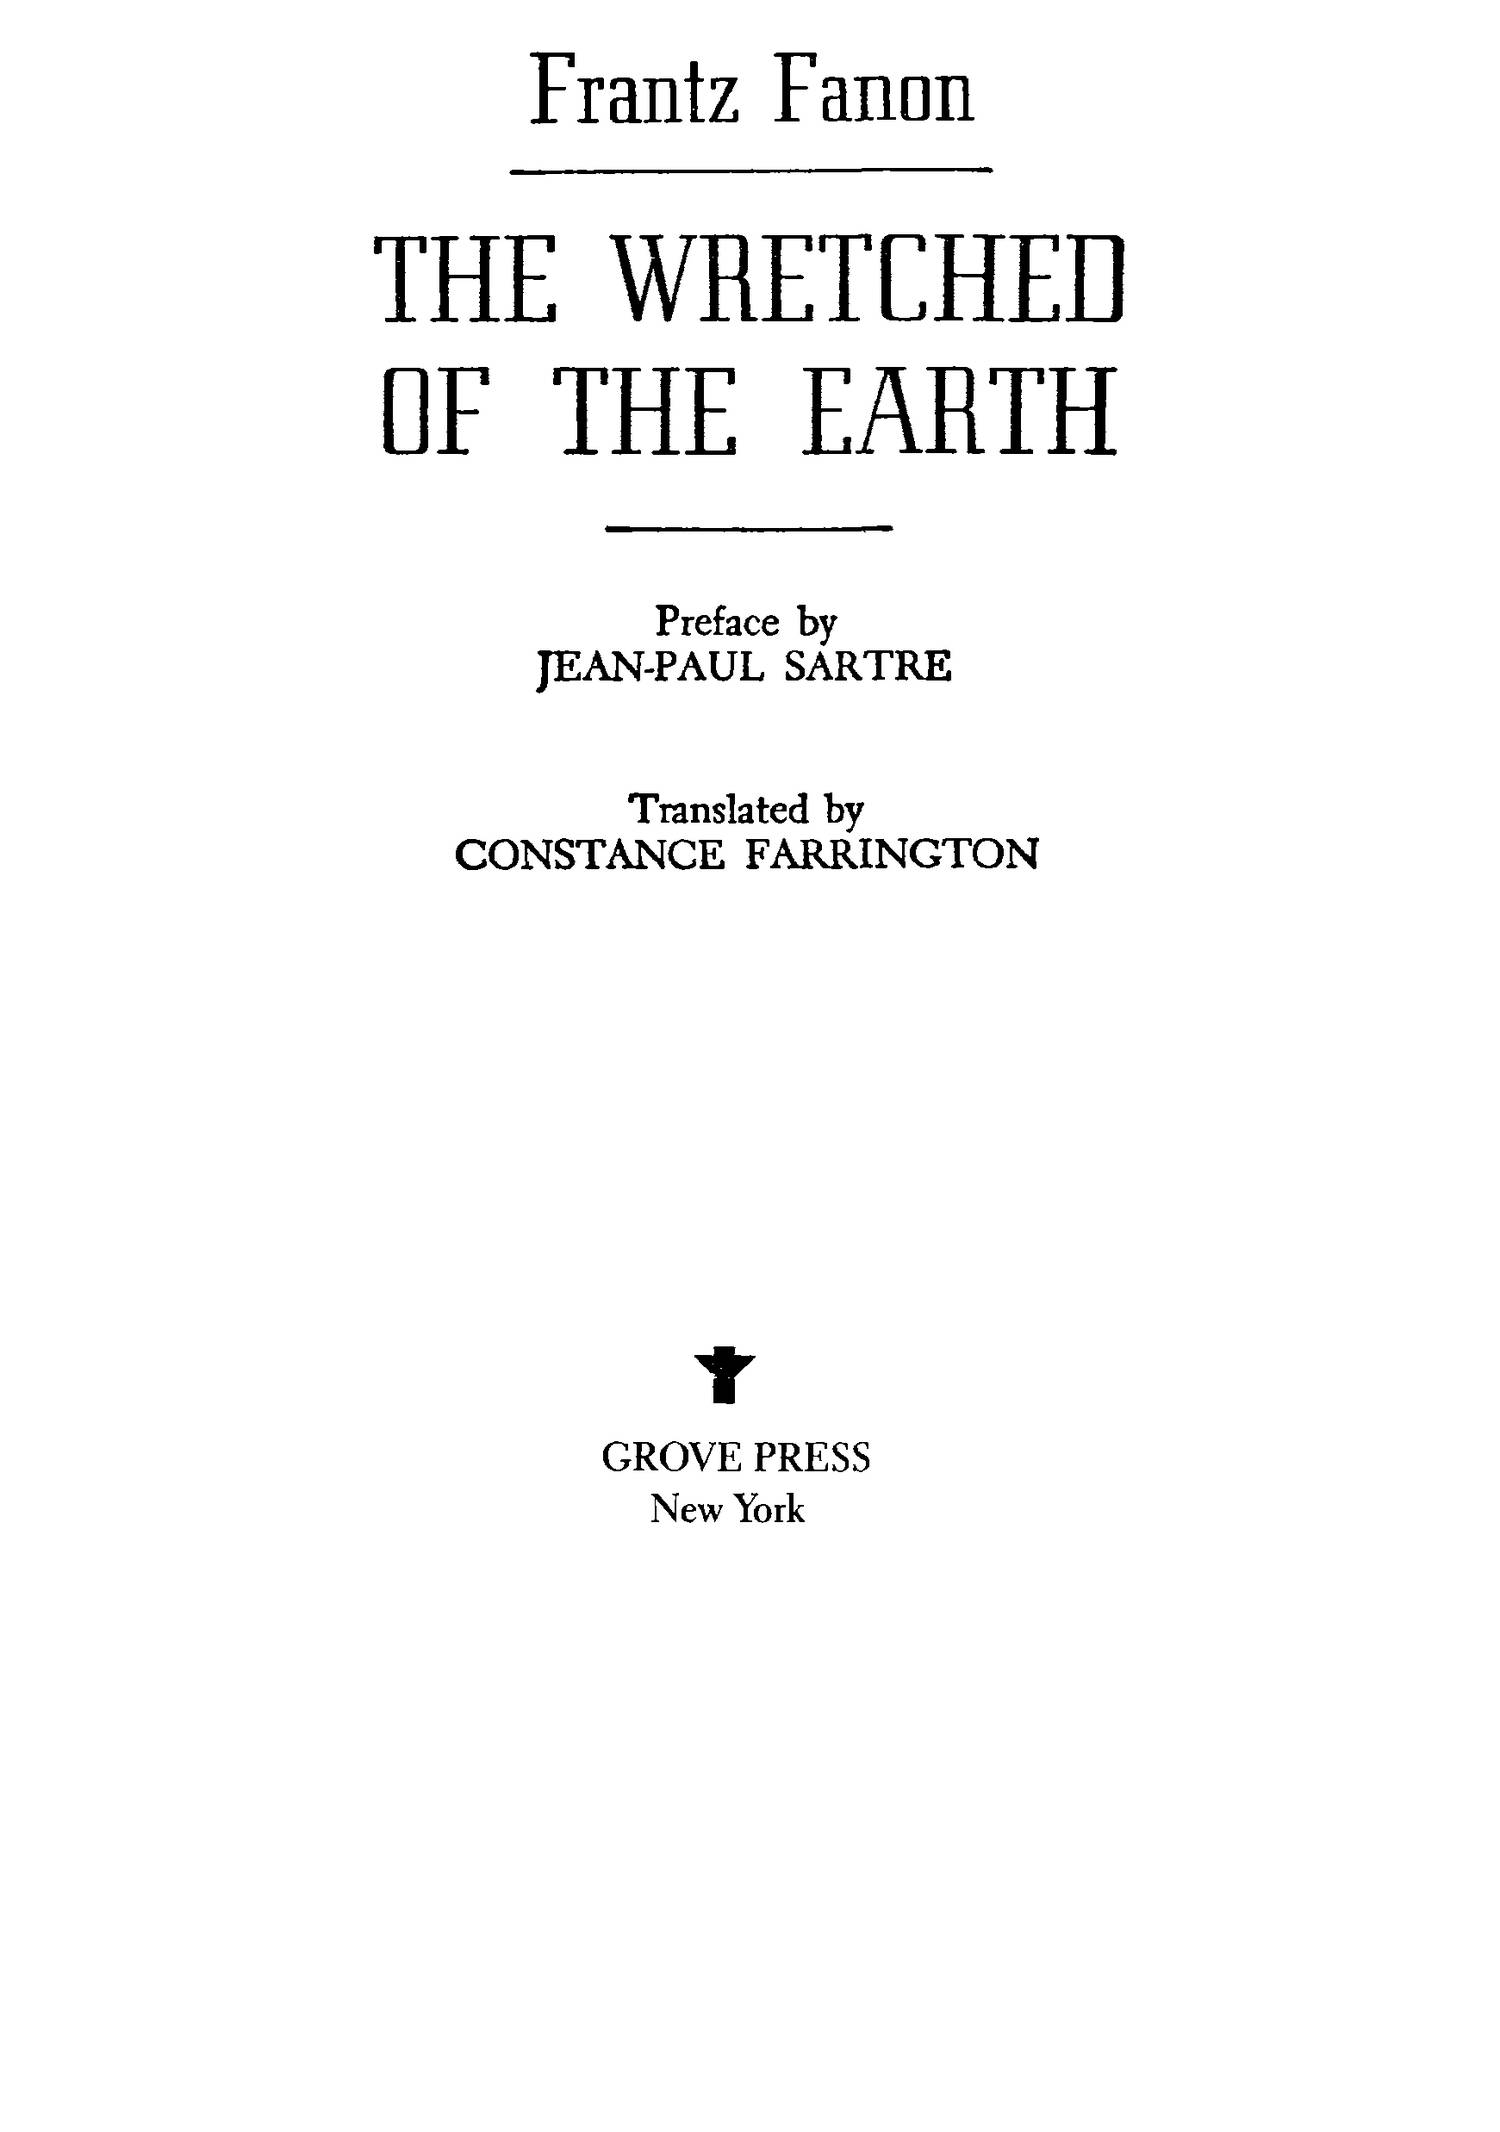 a literary analysis of the wretched of the earth